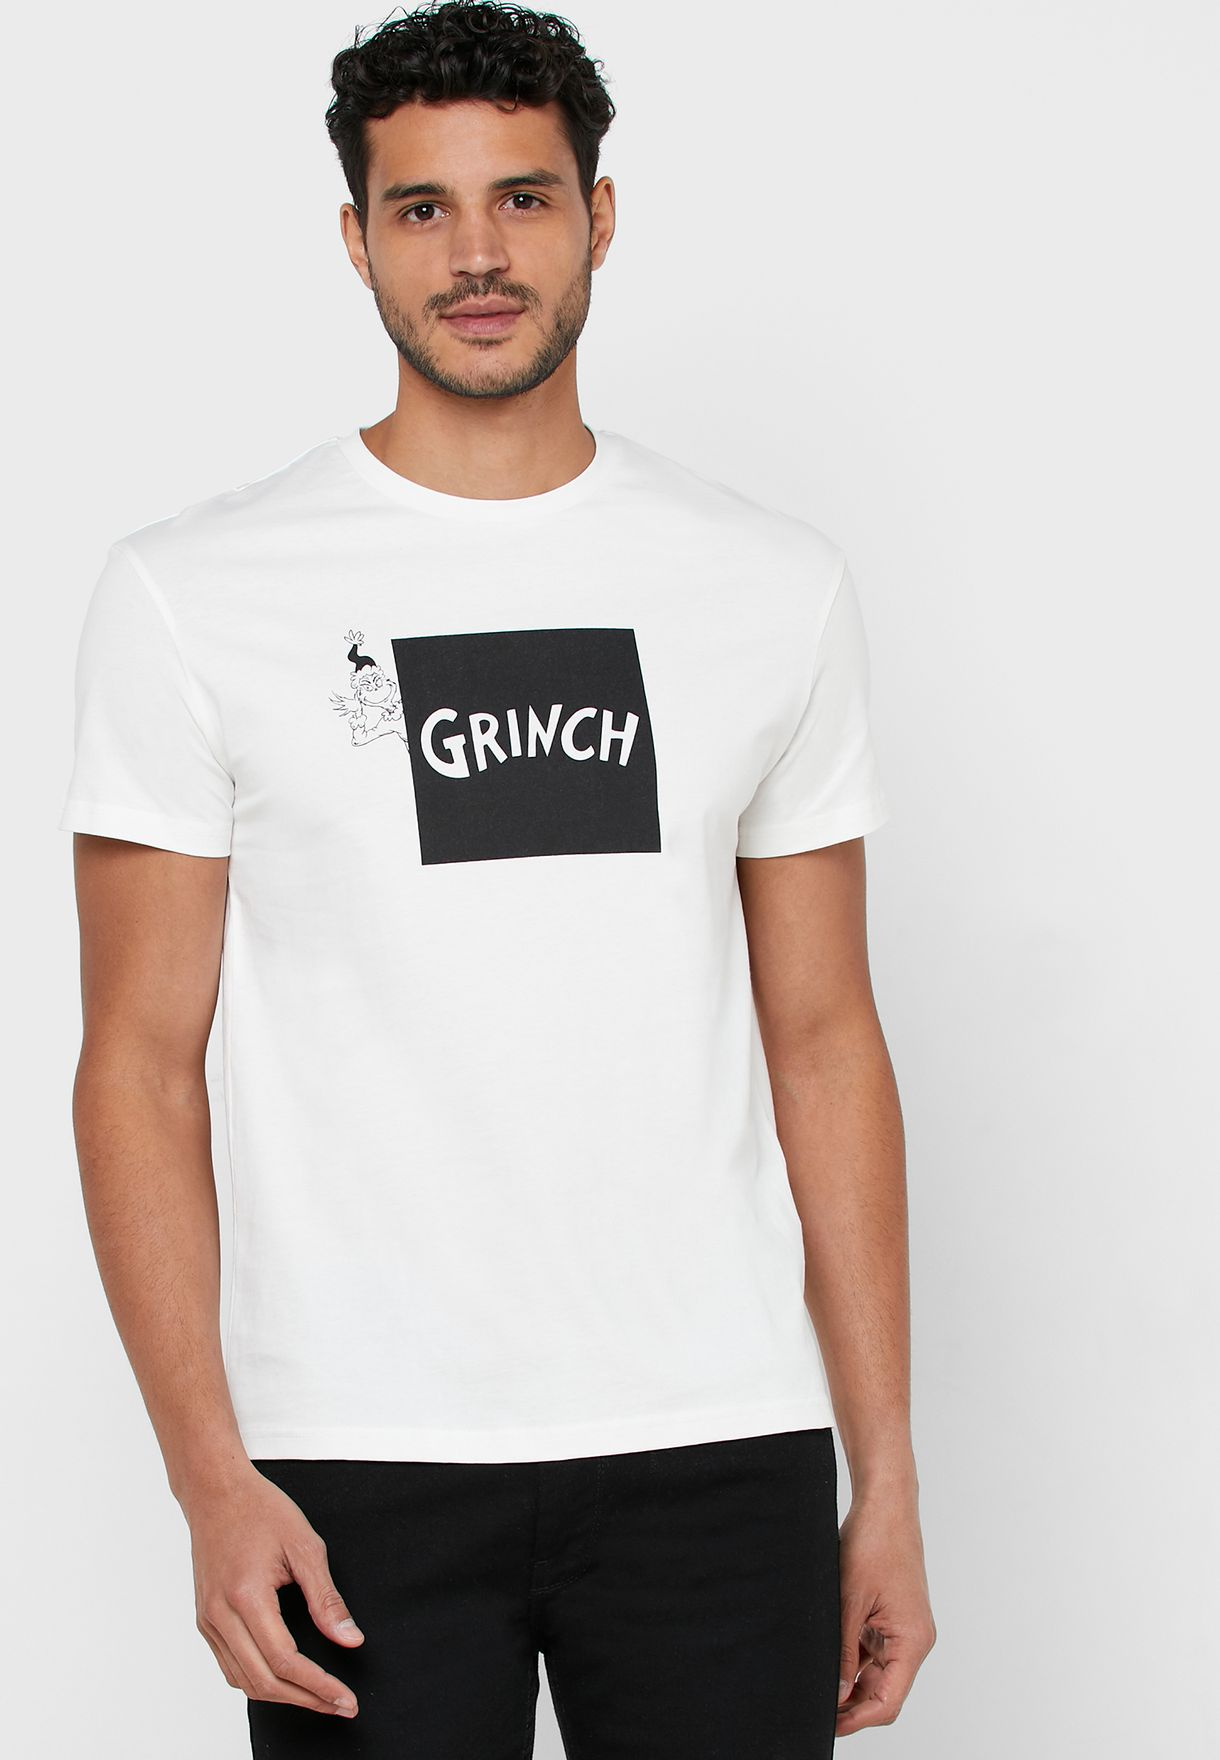 Grinch Relaxed Fit Crew Neck T-Shirt